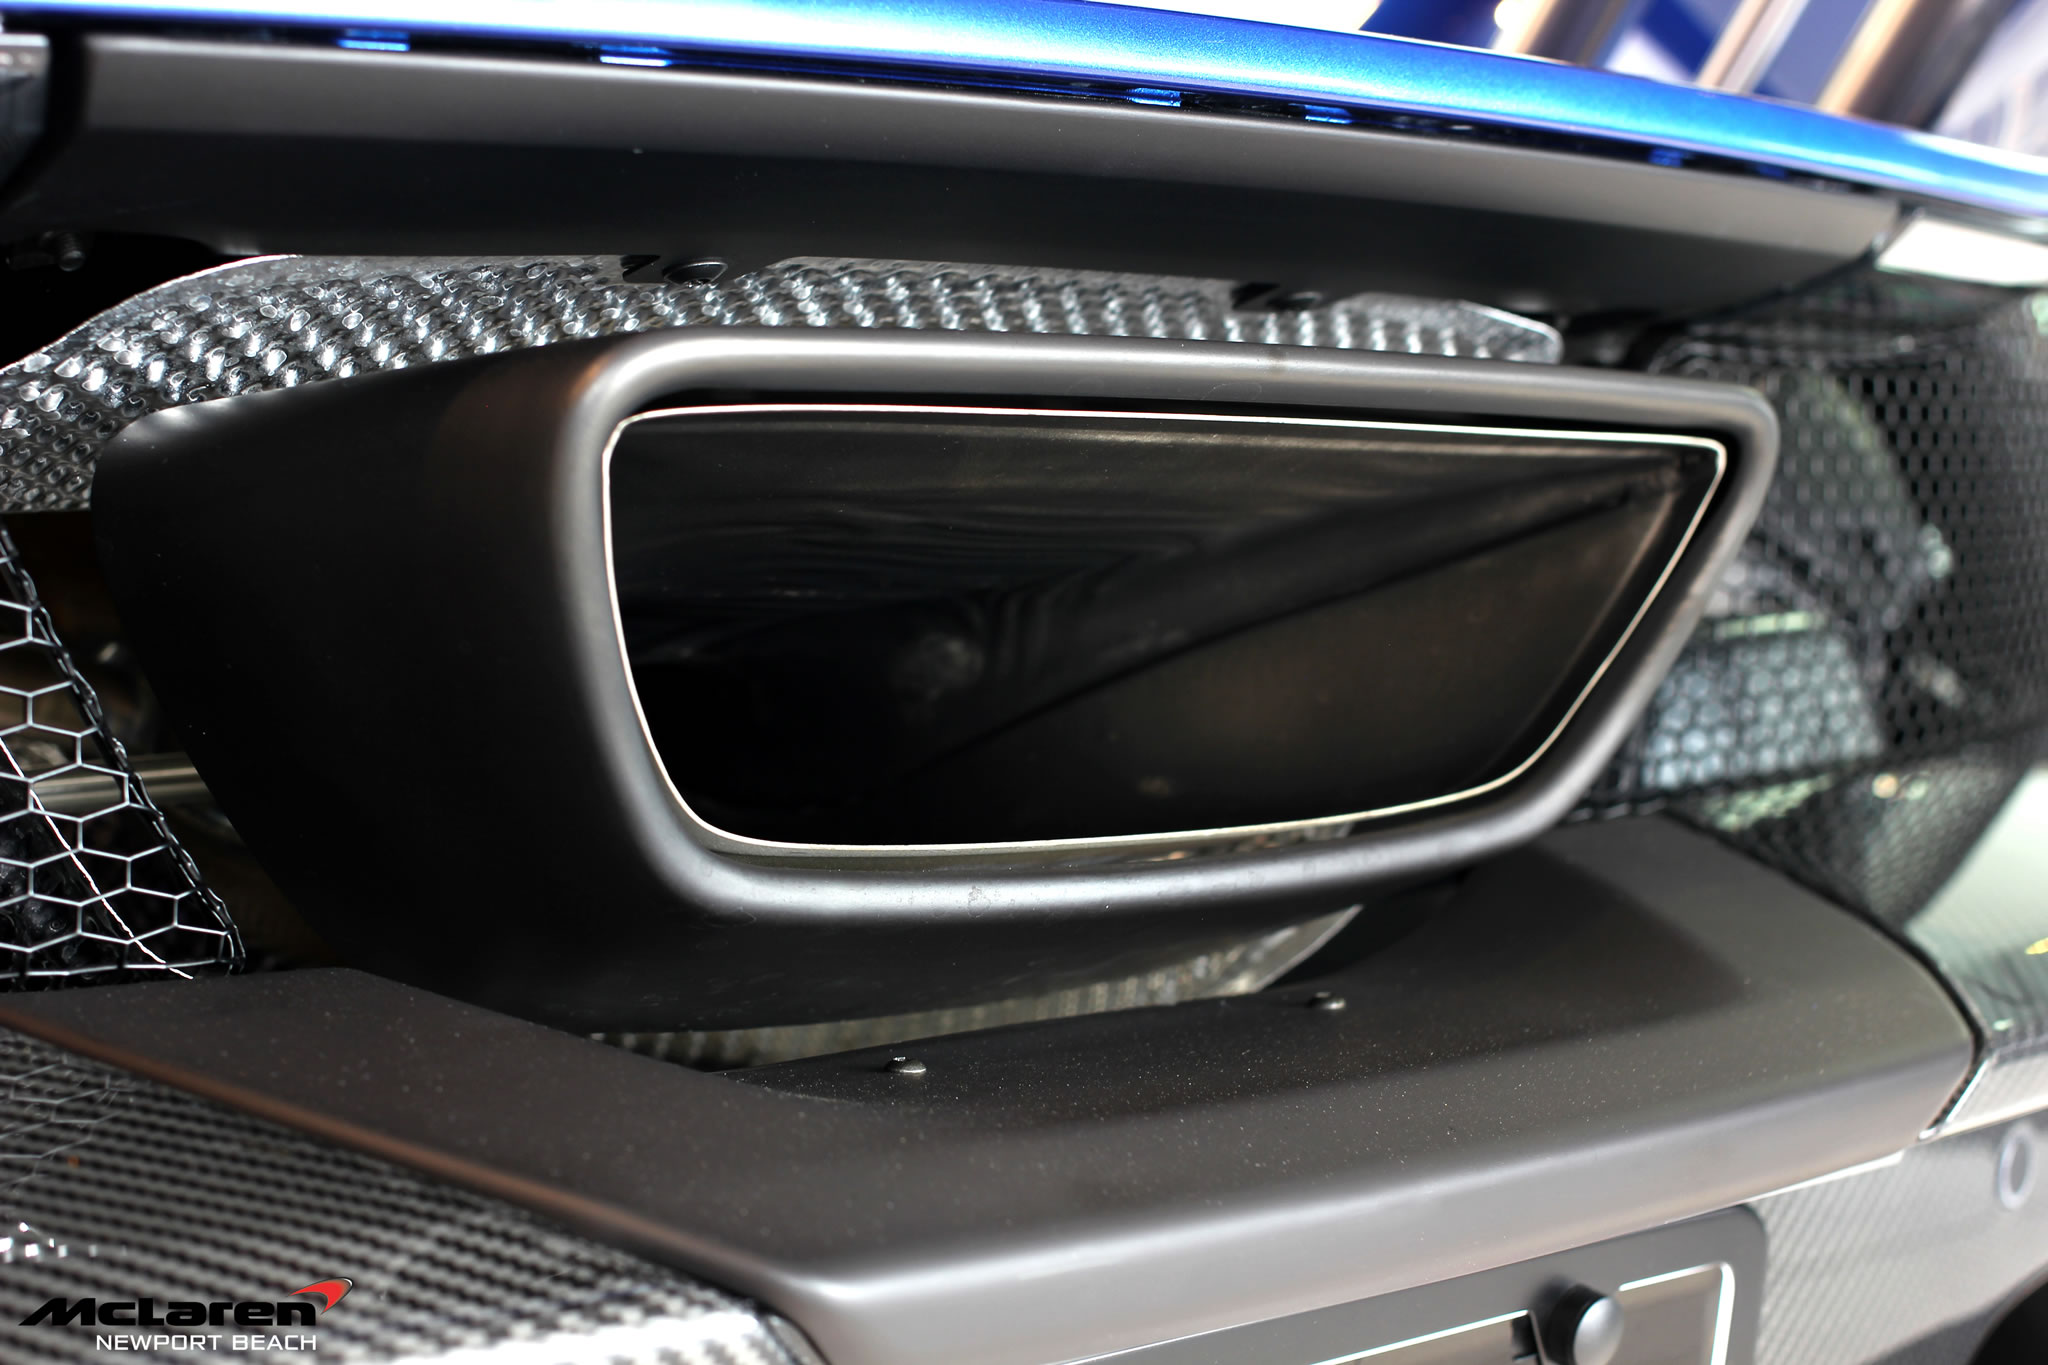 2015 McLaren P1 at Newport Beach Dealership - detail photo ...